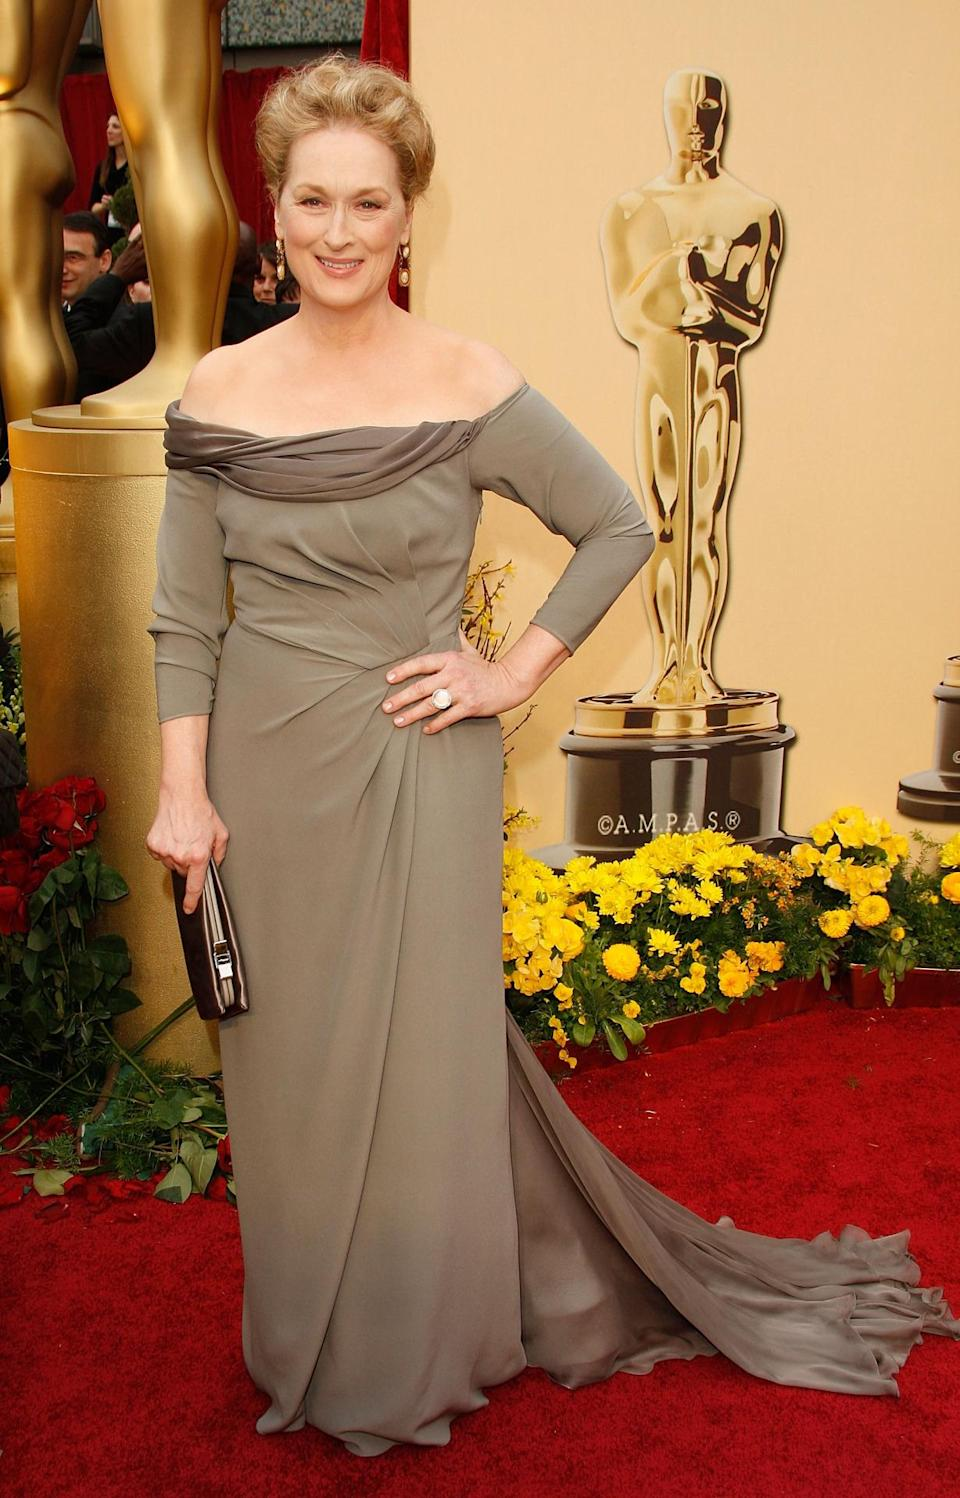 <p>There was no <i>Doubt</i> that Streep stunned on the red carpet in this fitted gown by Alberta Ferretti in 2009.</p>